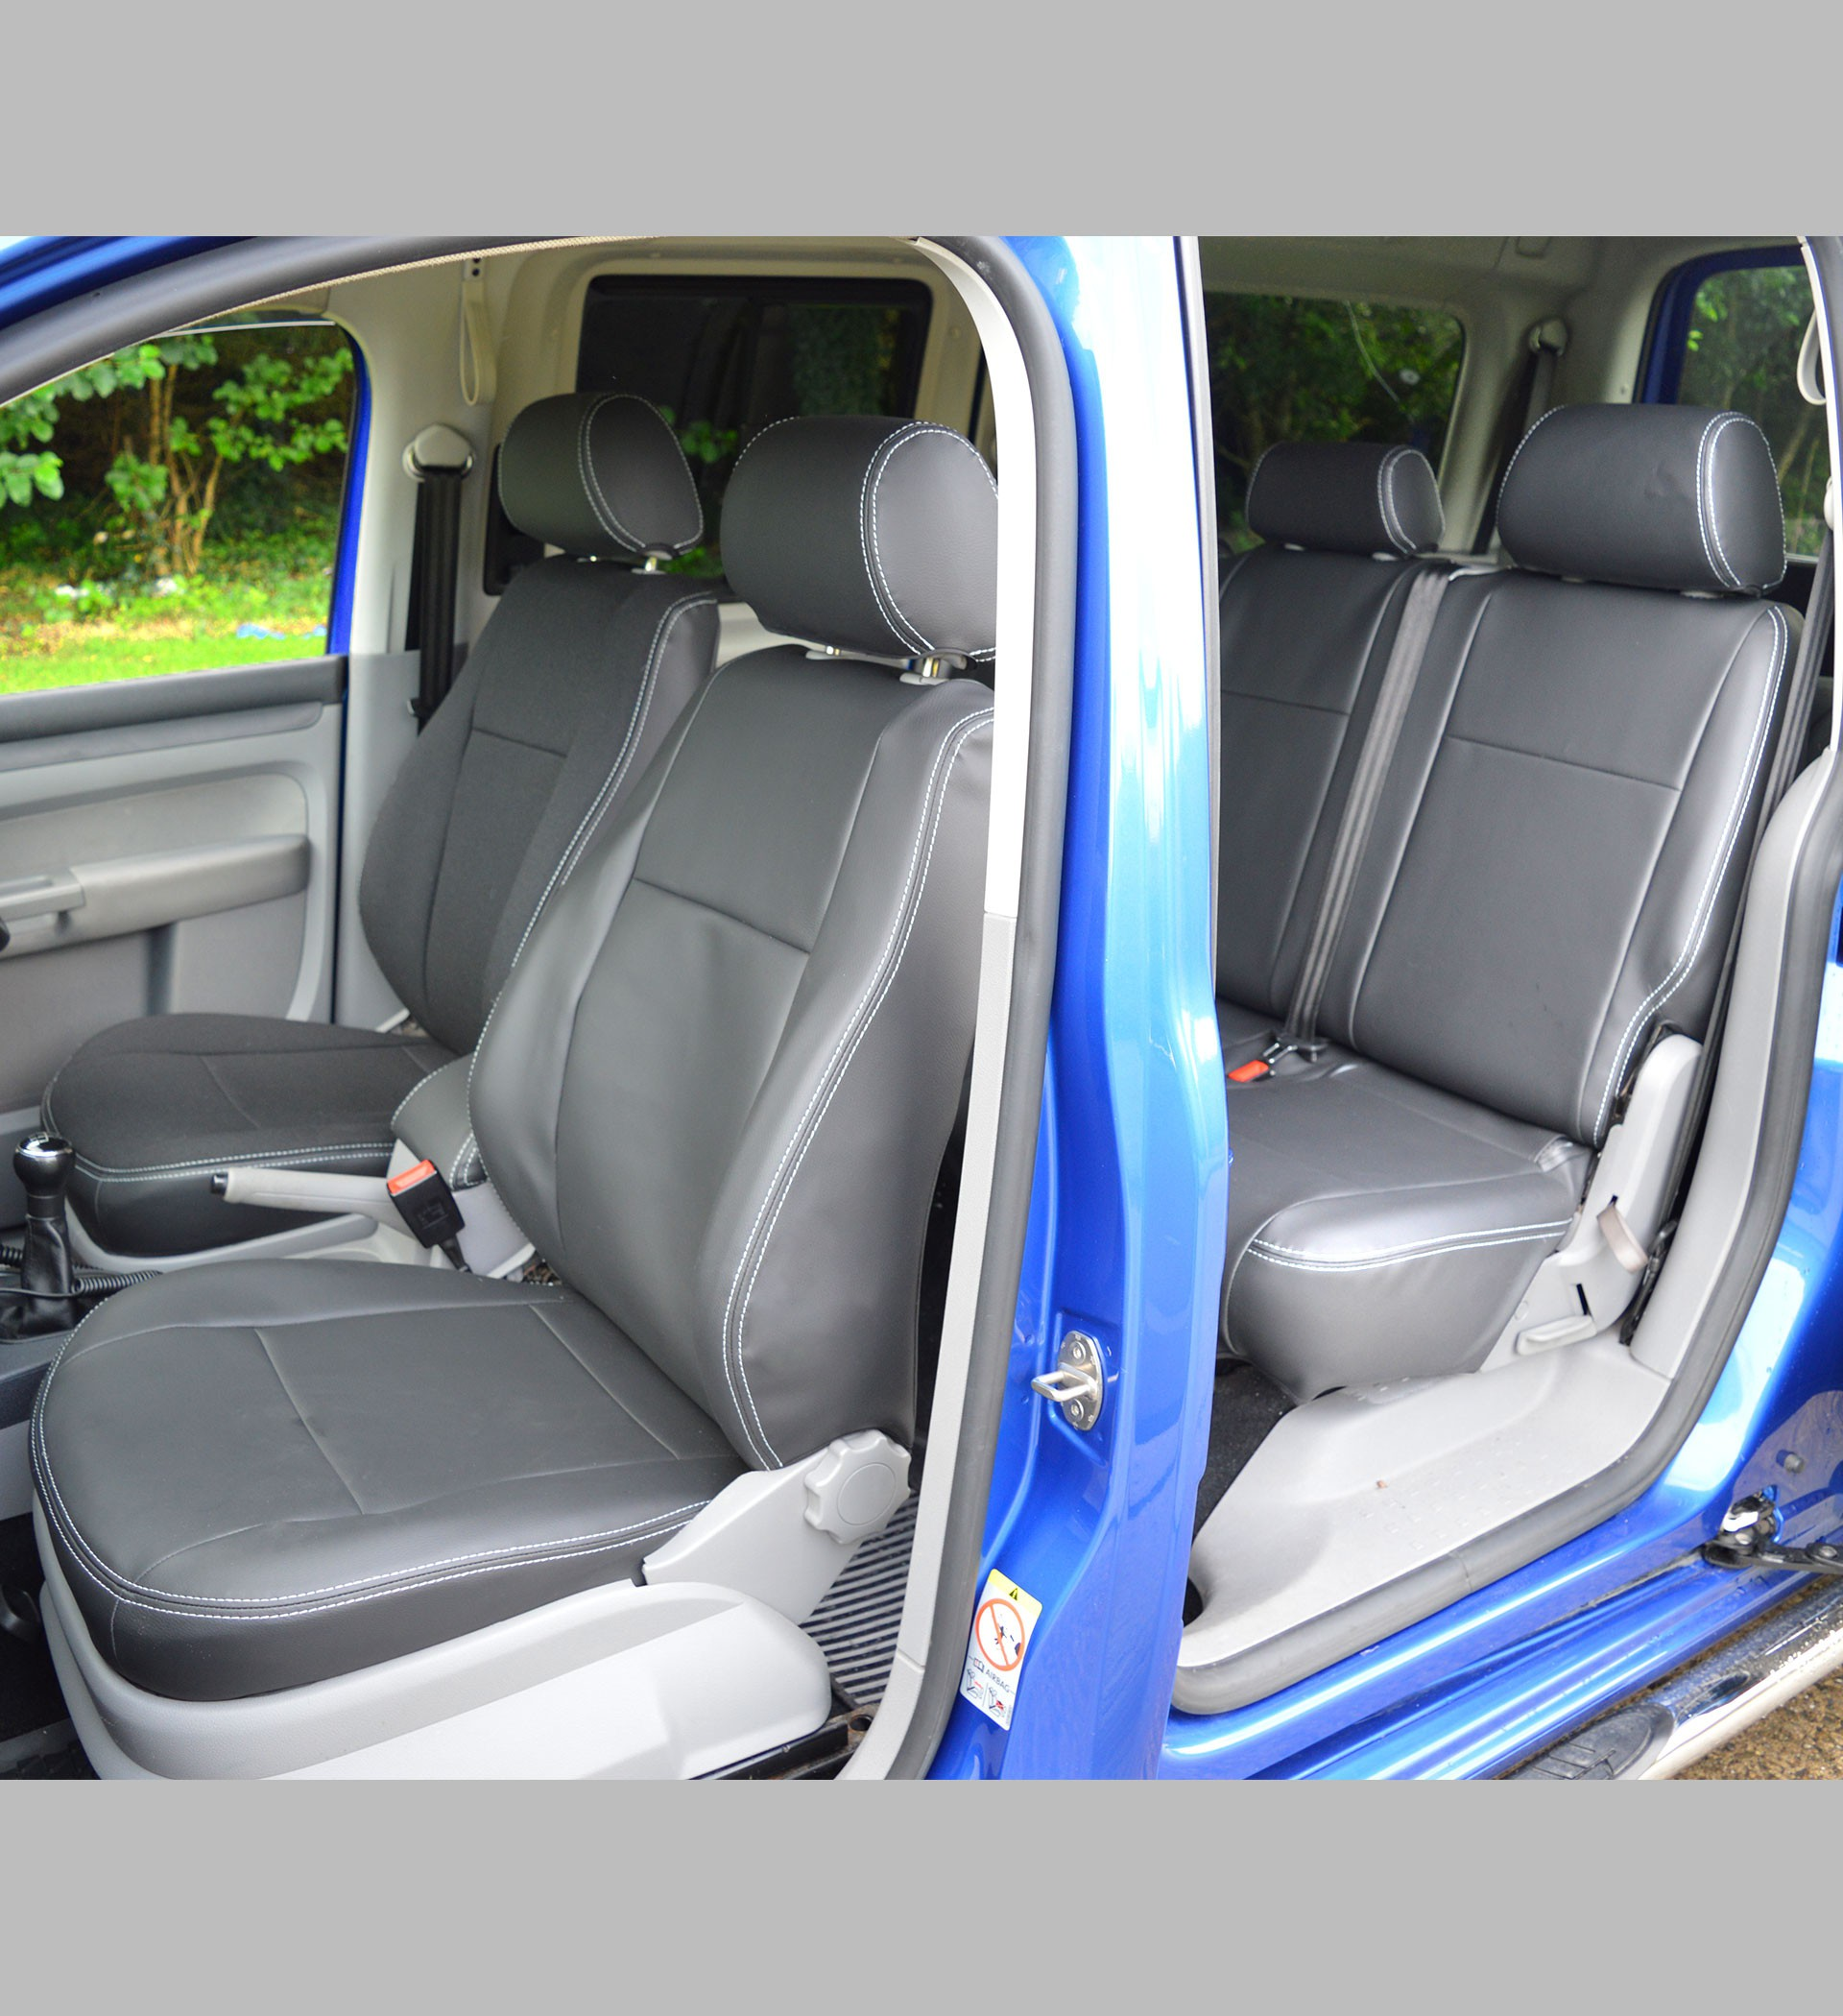 VW Caddy Maxi 5 seater Tailored Van Seat Covers